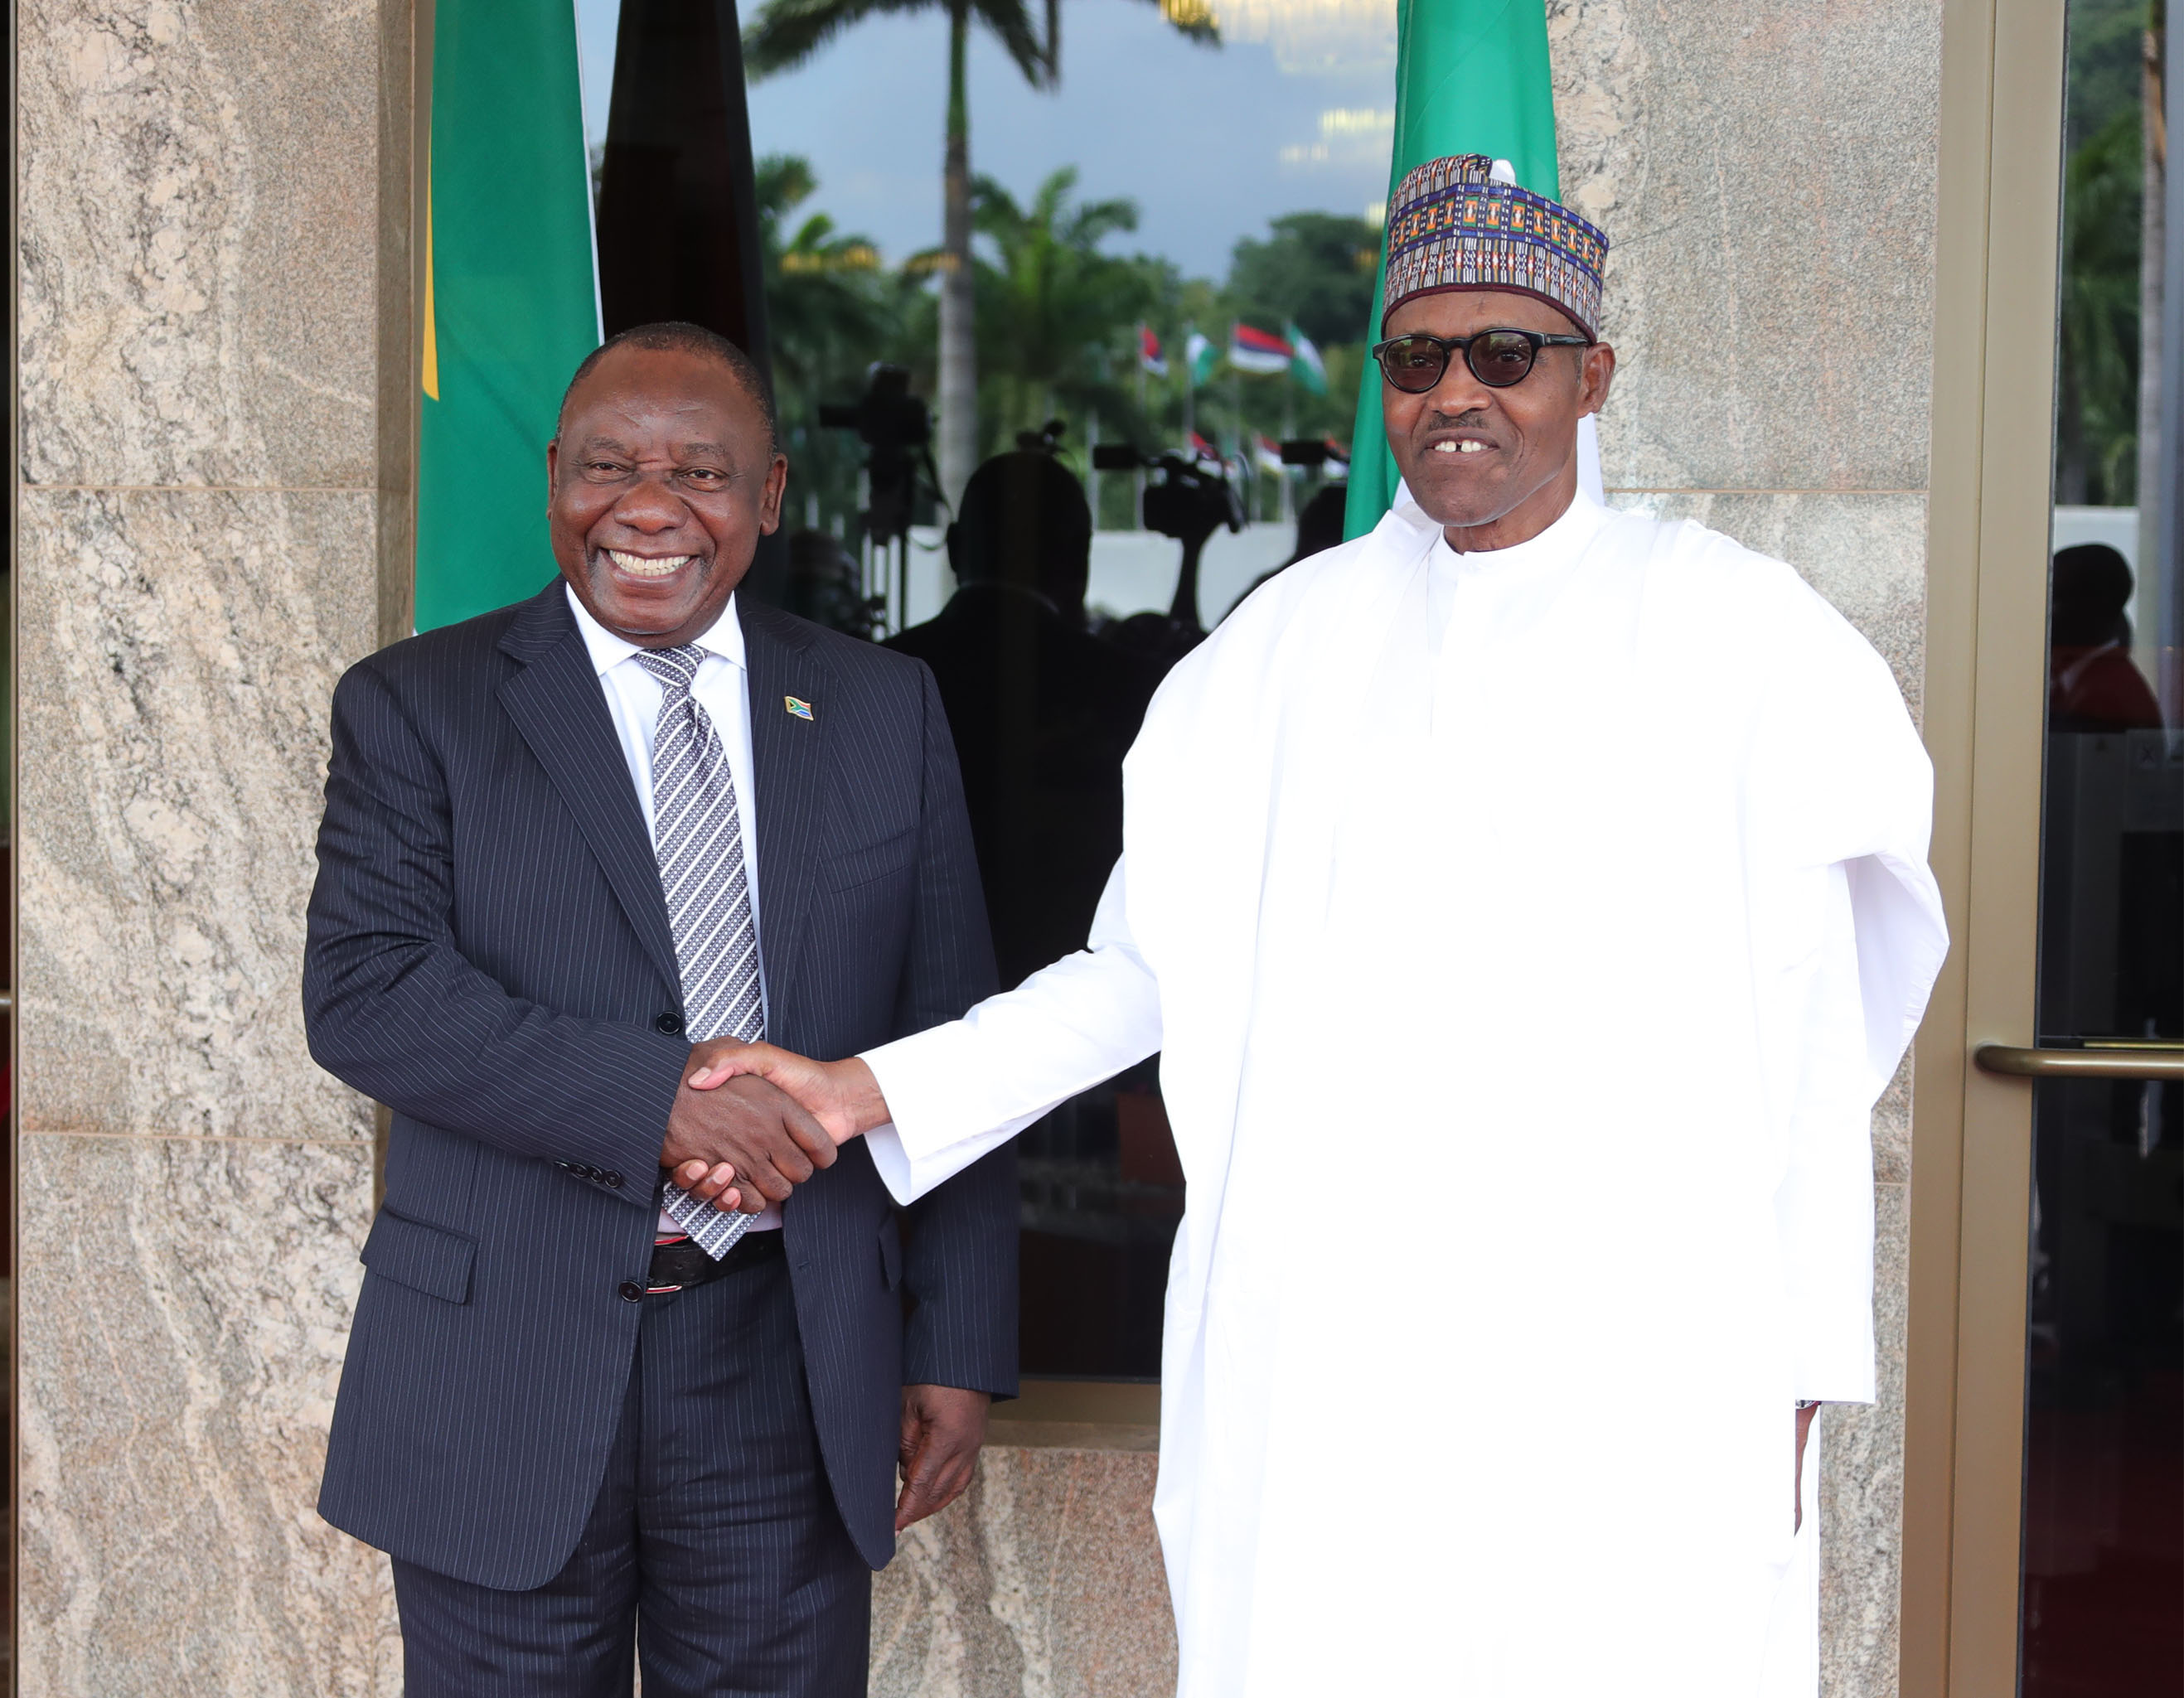 The Day in Pictures: Buhari, Ramaphosa at the Villa